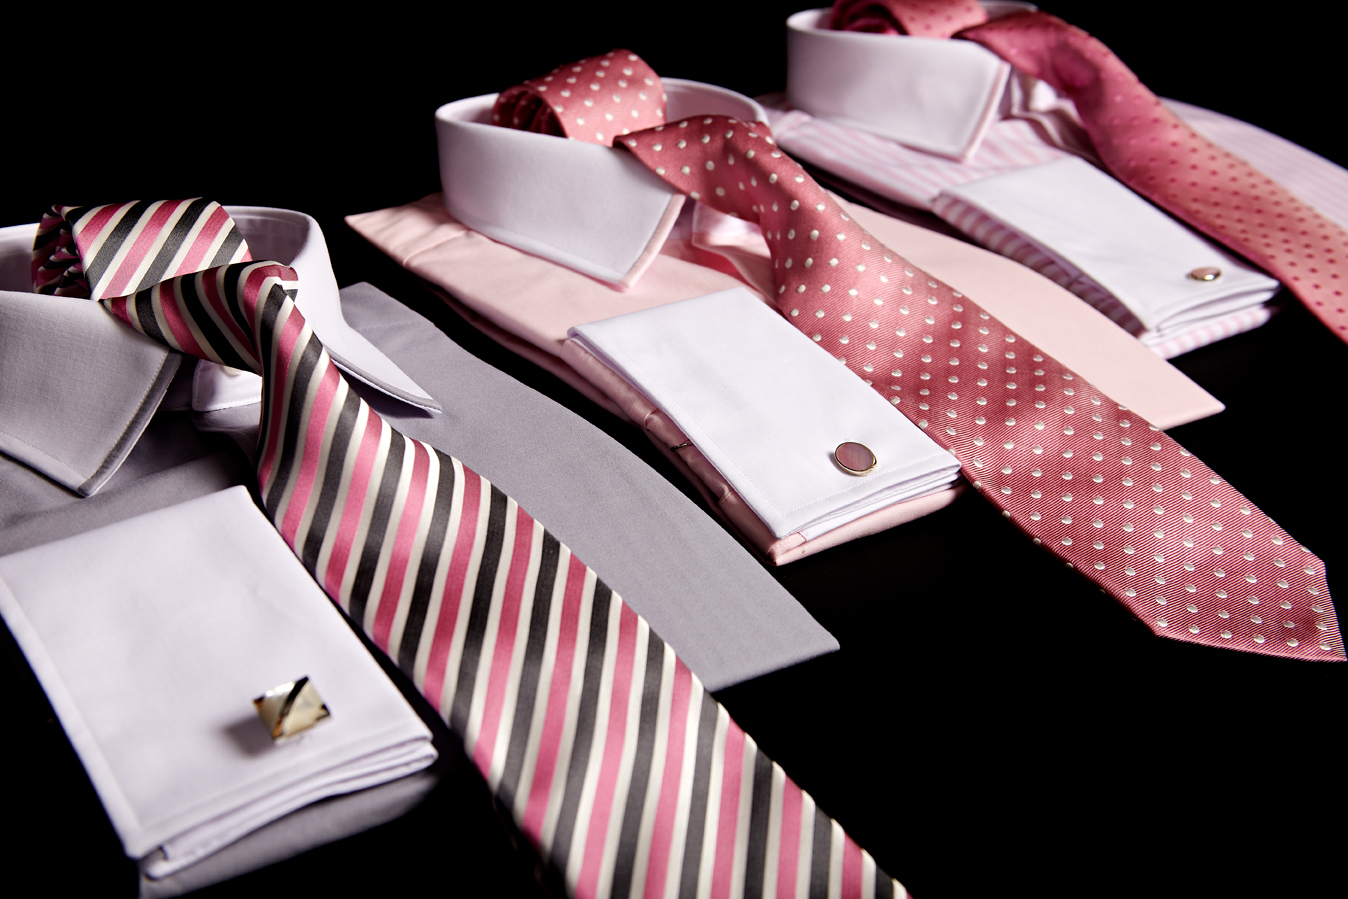 Ties and Super fine two fold cotton shirts